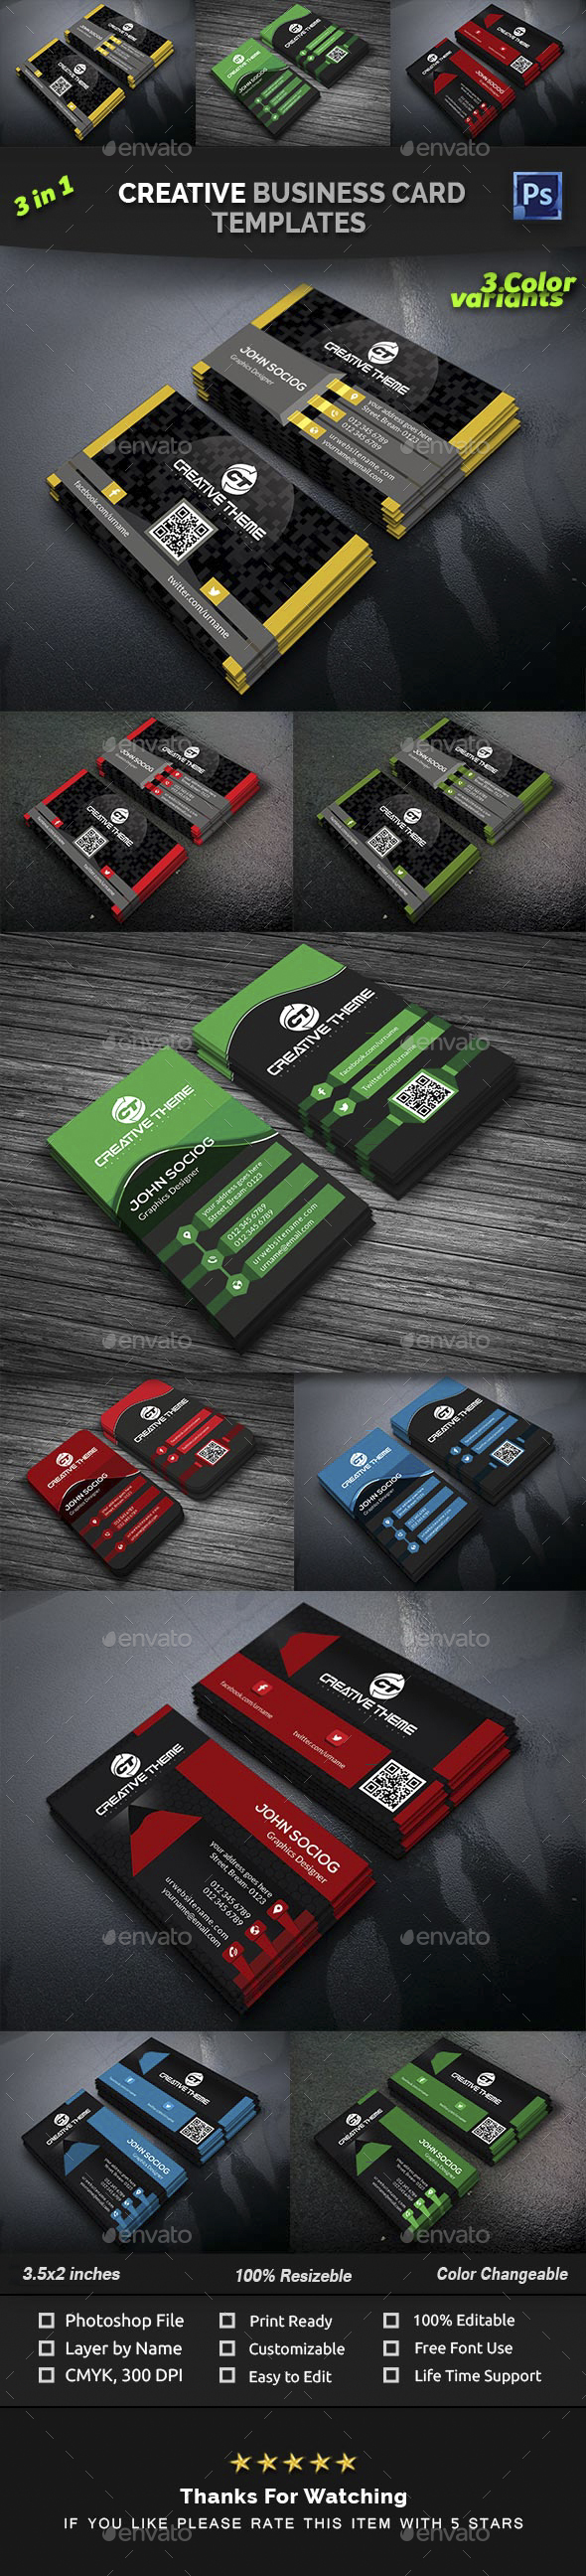 GraphicRiver Creative Business Card Templates 21049106